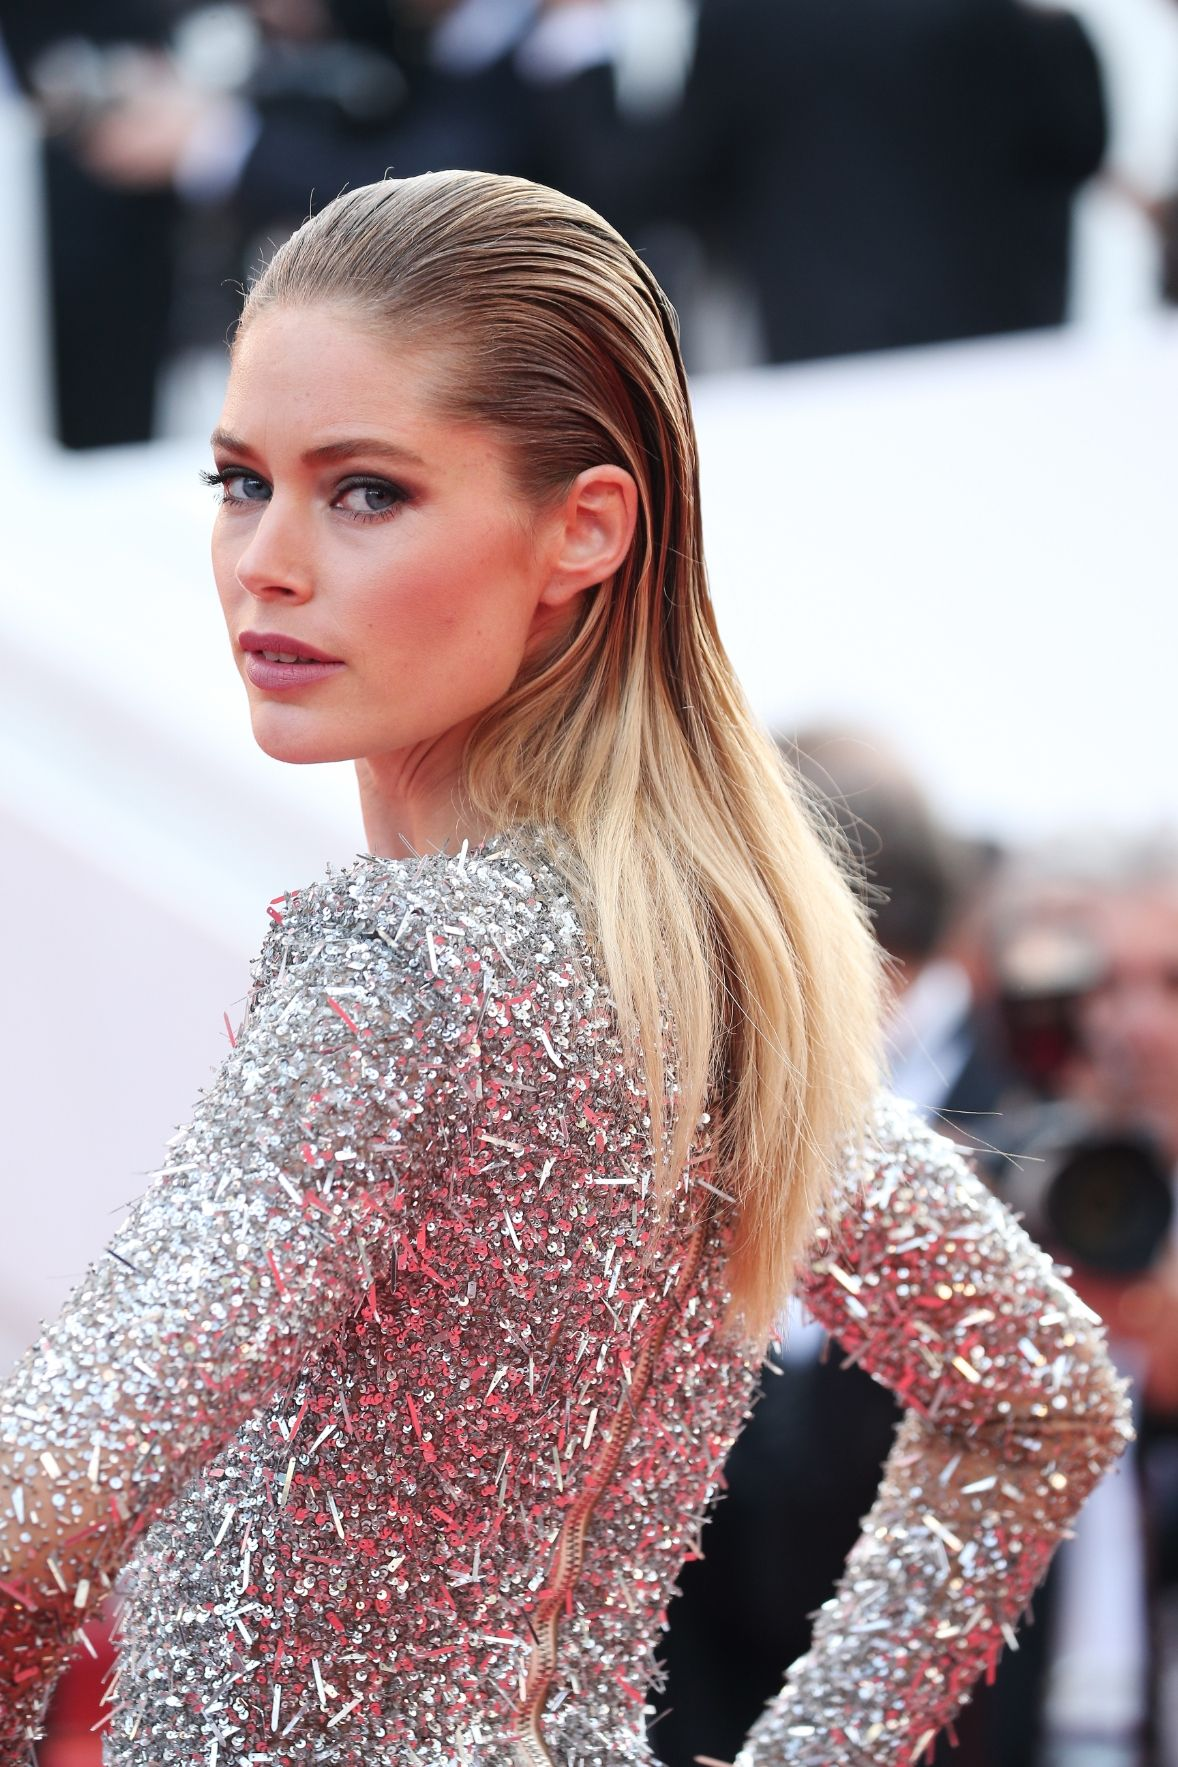 Doutzen Kroes slicked back hairstyles 2017 Cannes